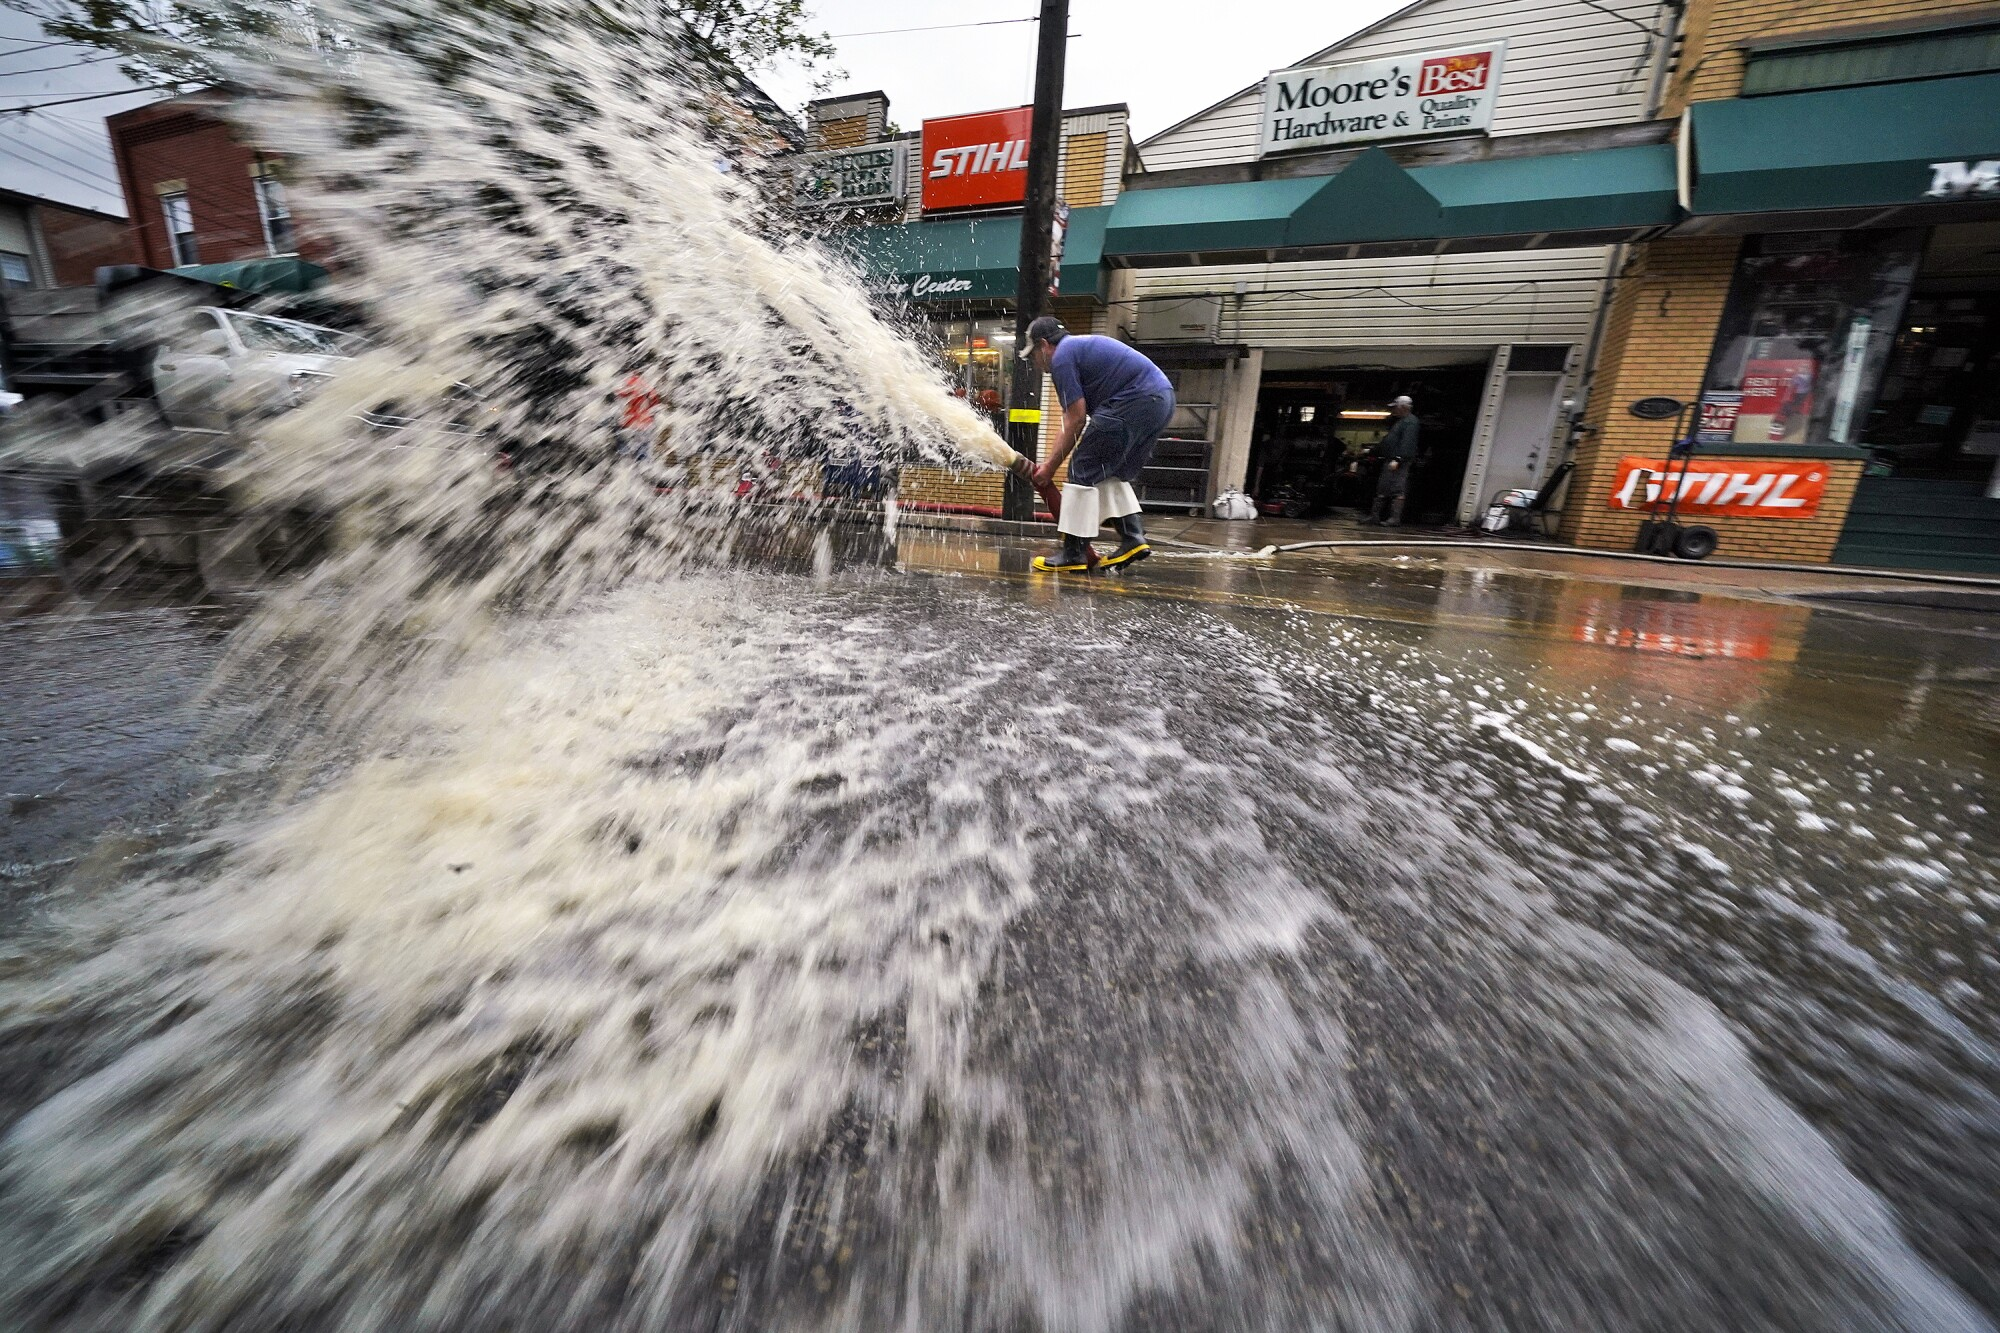 Water sprays dramatically from a pump on a street outside a hardware store.